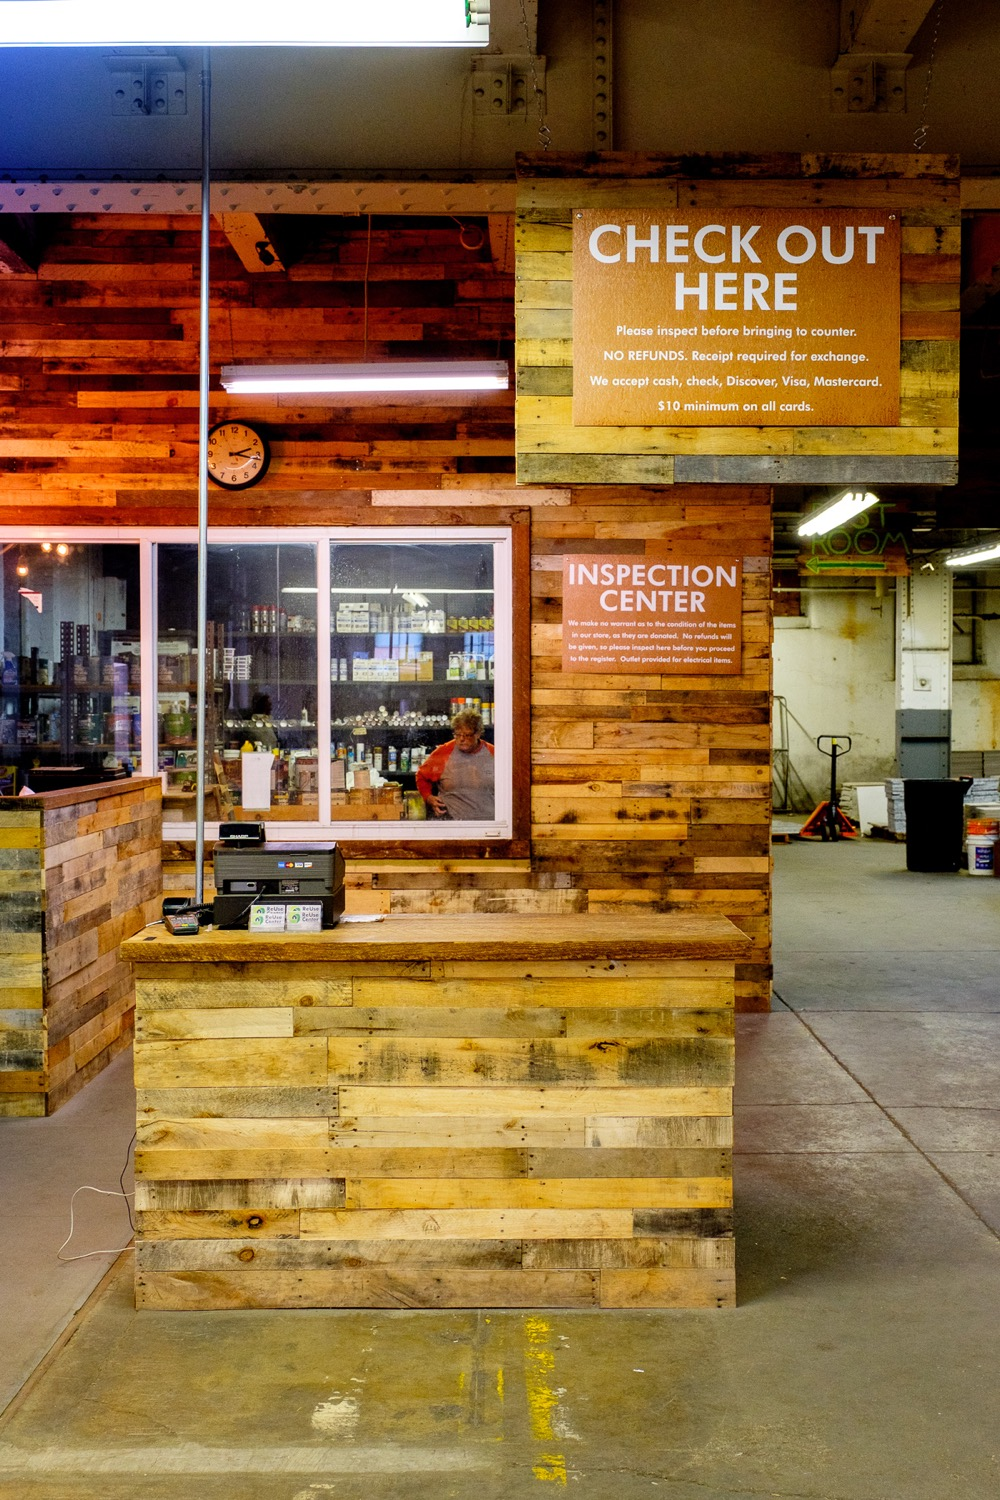 The ReUse Center offers building supplies and reclaimed materials on the cheap, so if you've got a DIY project, this is the first place you should look. / Address: 1530 Tremont Street, South Fairmount 45214 / Image: Daniel Smyth Photography